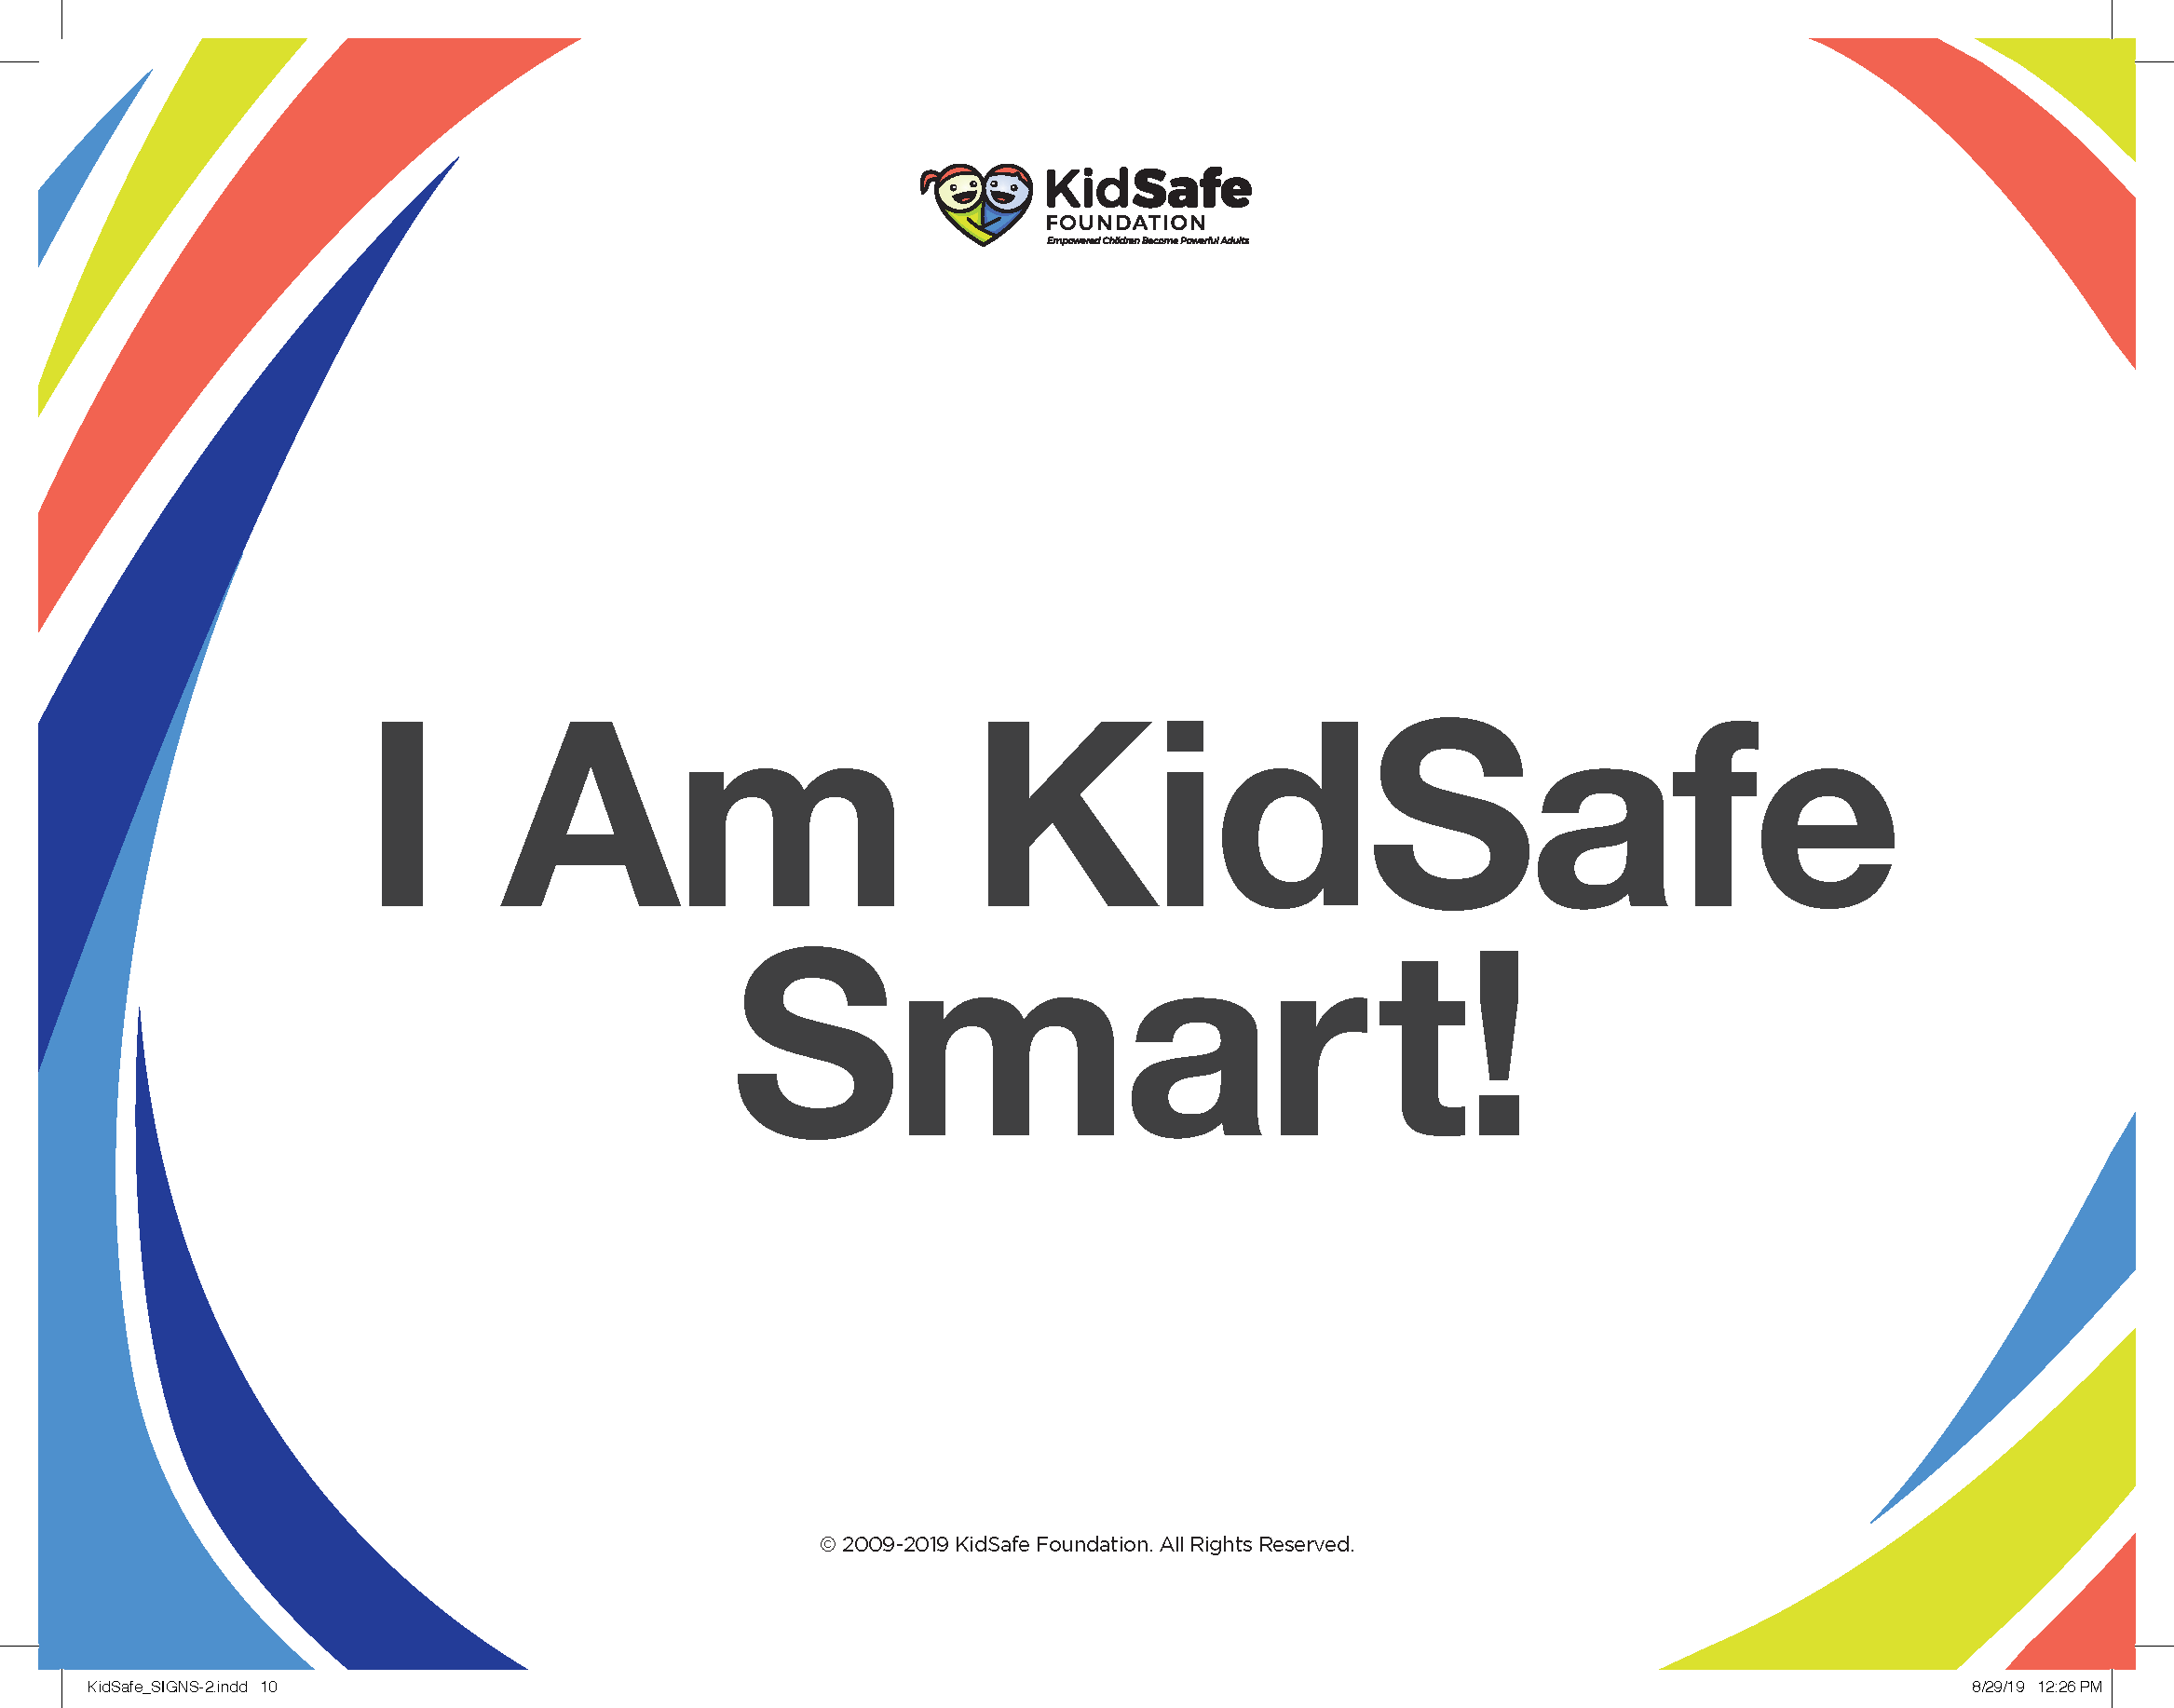 KidSafe_Signs PRINT 08.29.19 10